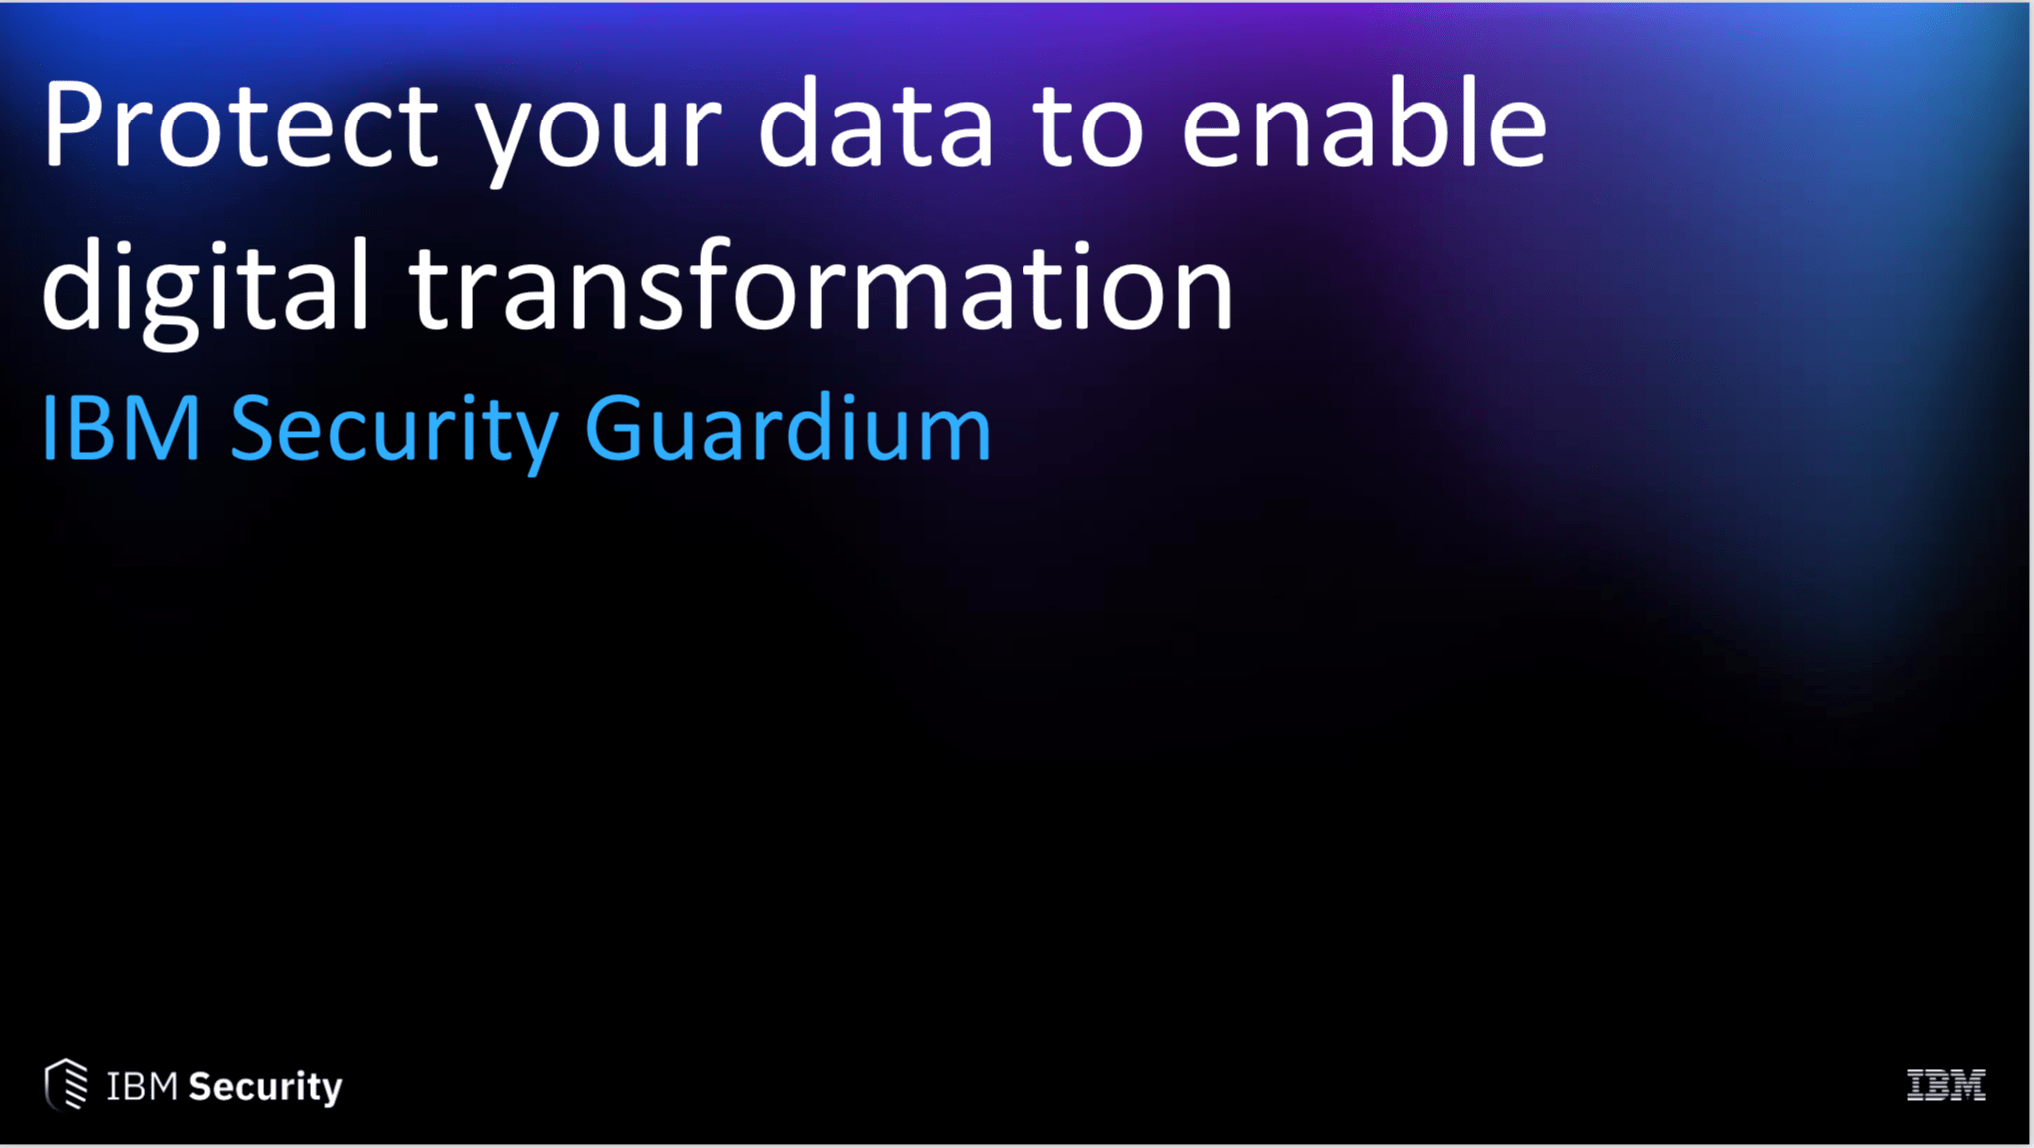 Protect your data to enable digital transformation